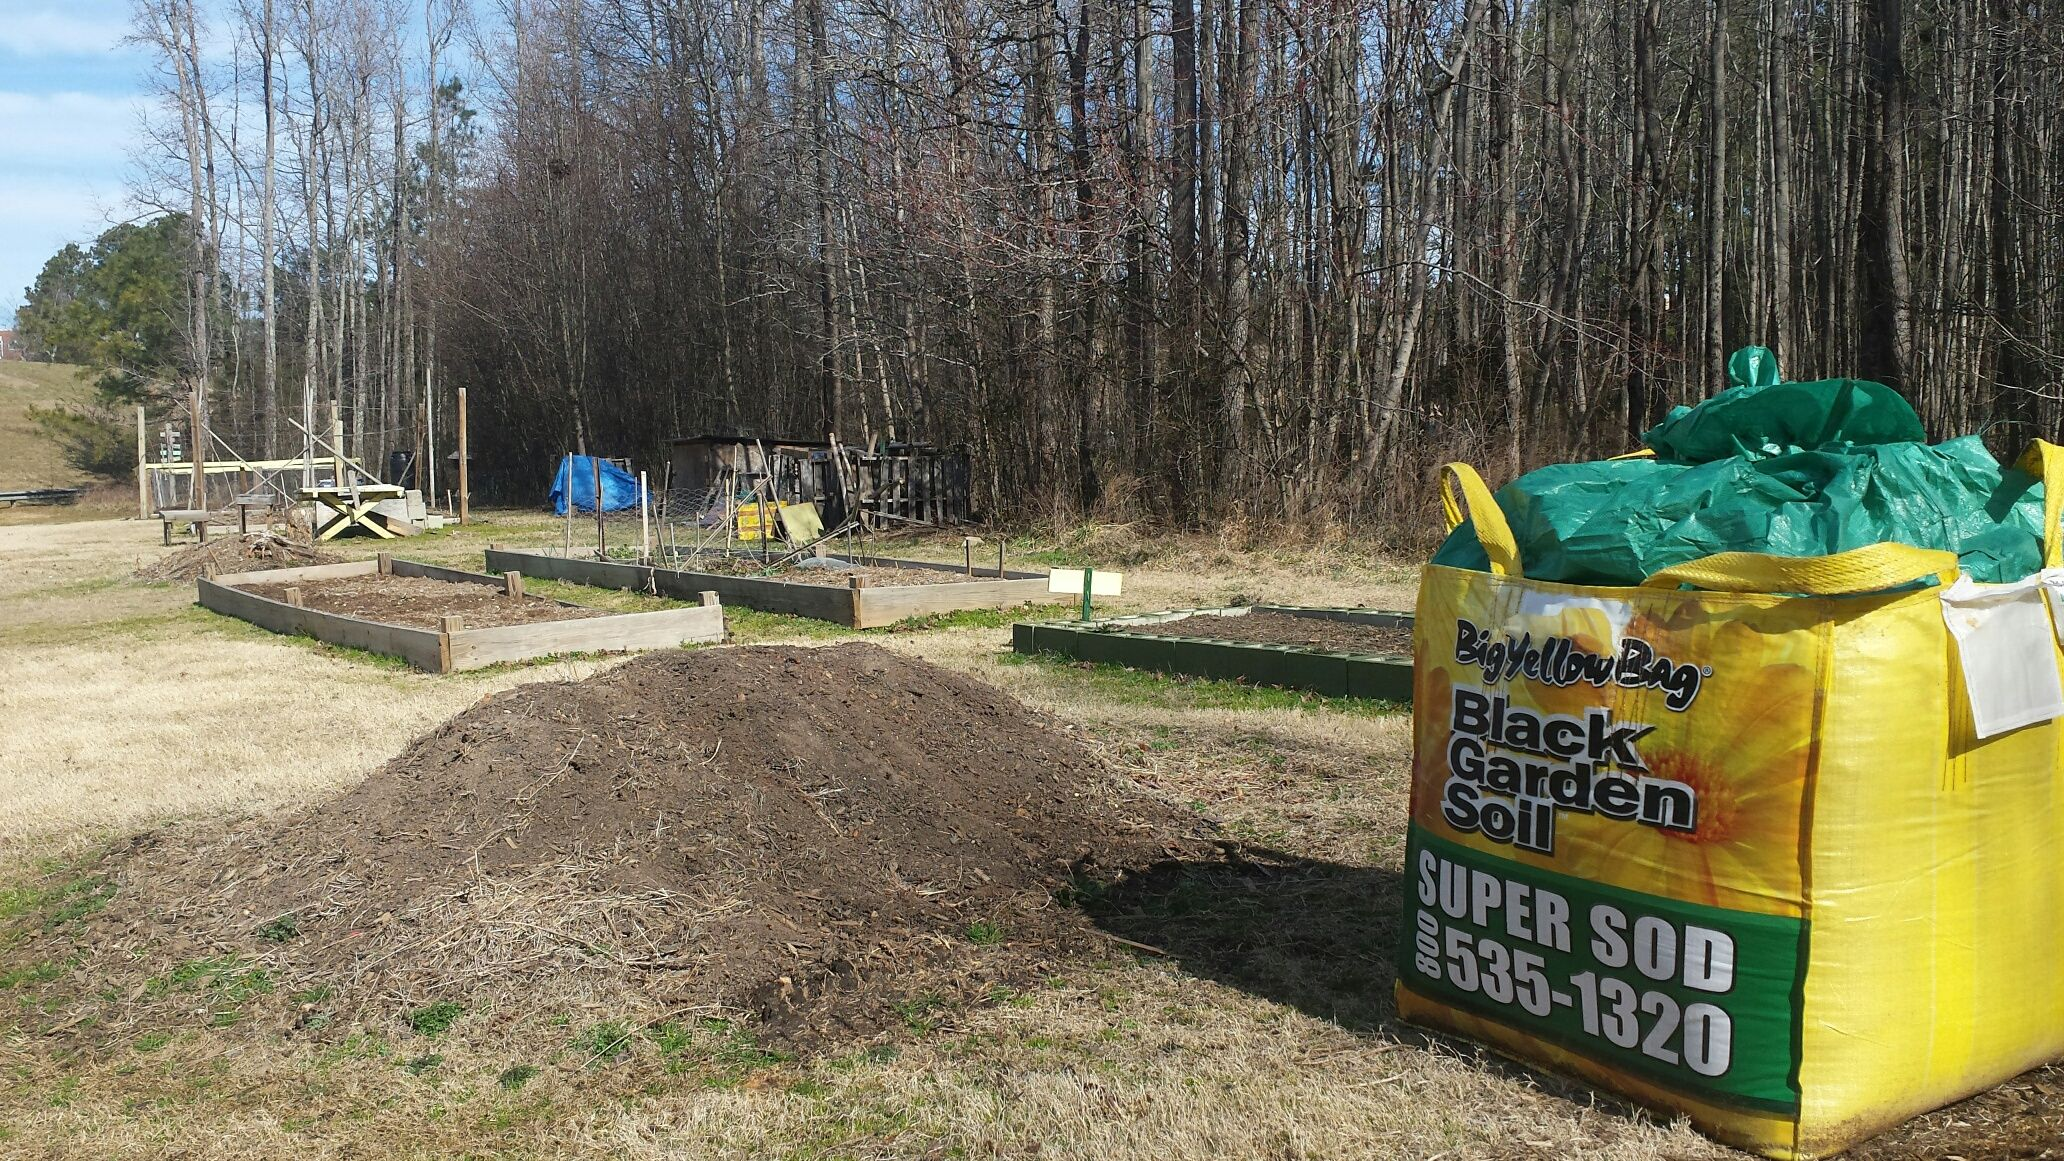 Super Sod S Soil3 Organic Compost Sold In A 1 Cubic Yard Bigyellowbag Delivered In Early February To Enrich Th Natural Pesticides Compost For Sale Garden Soil